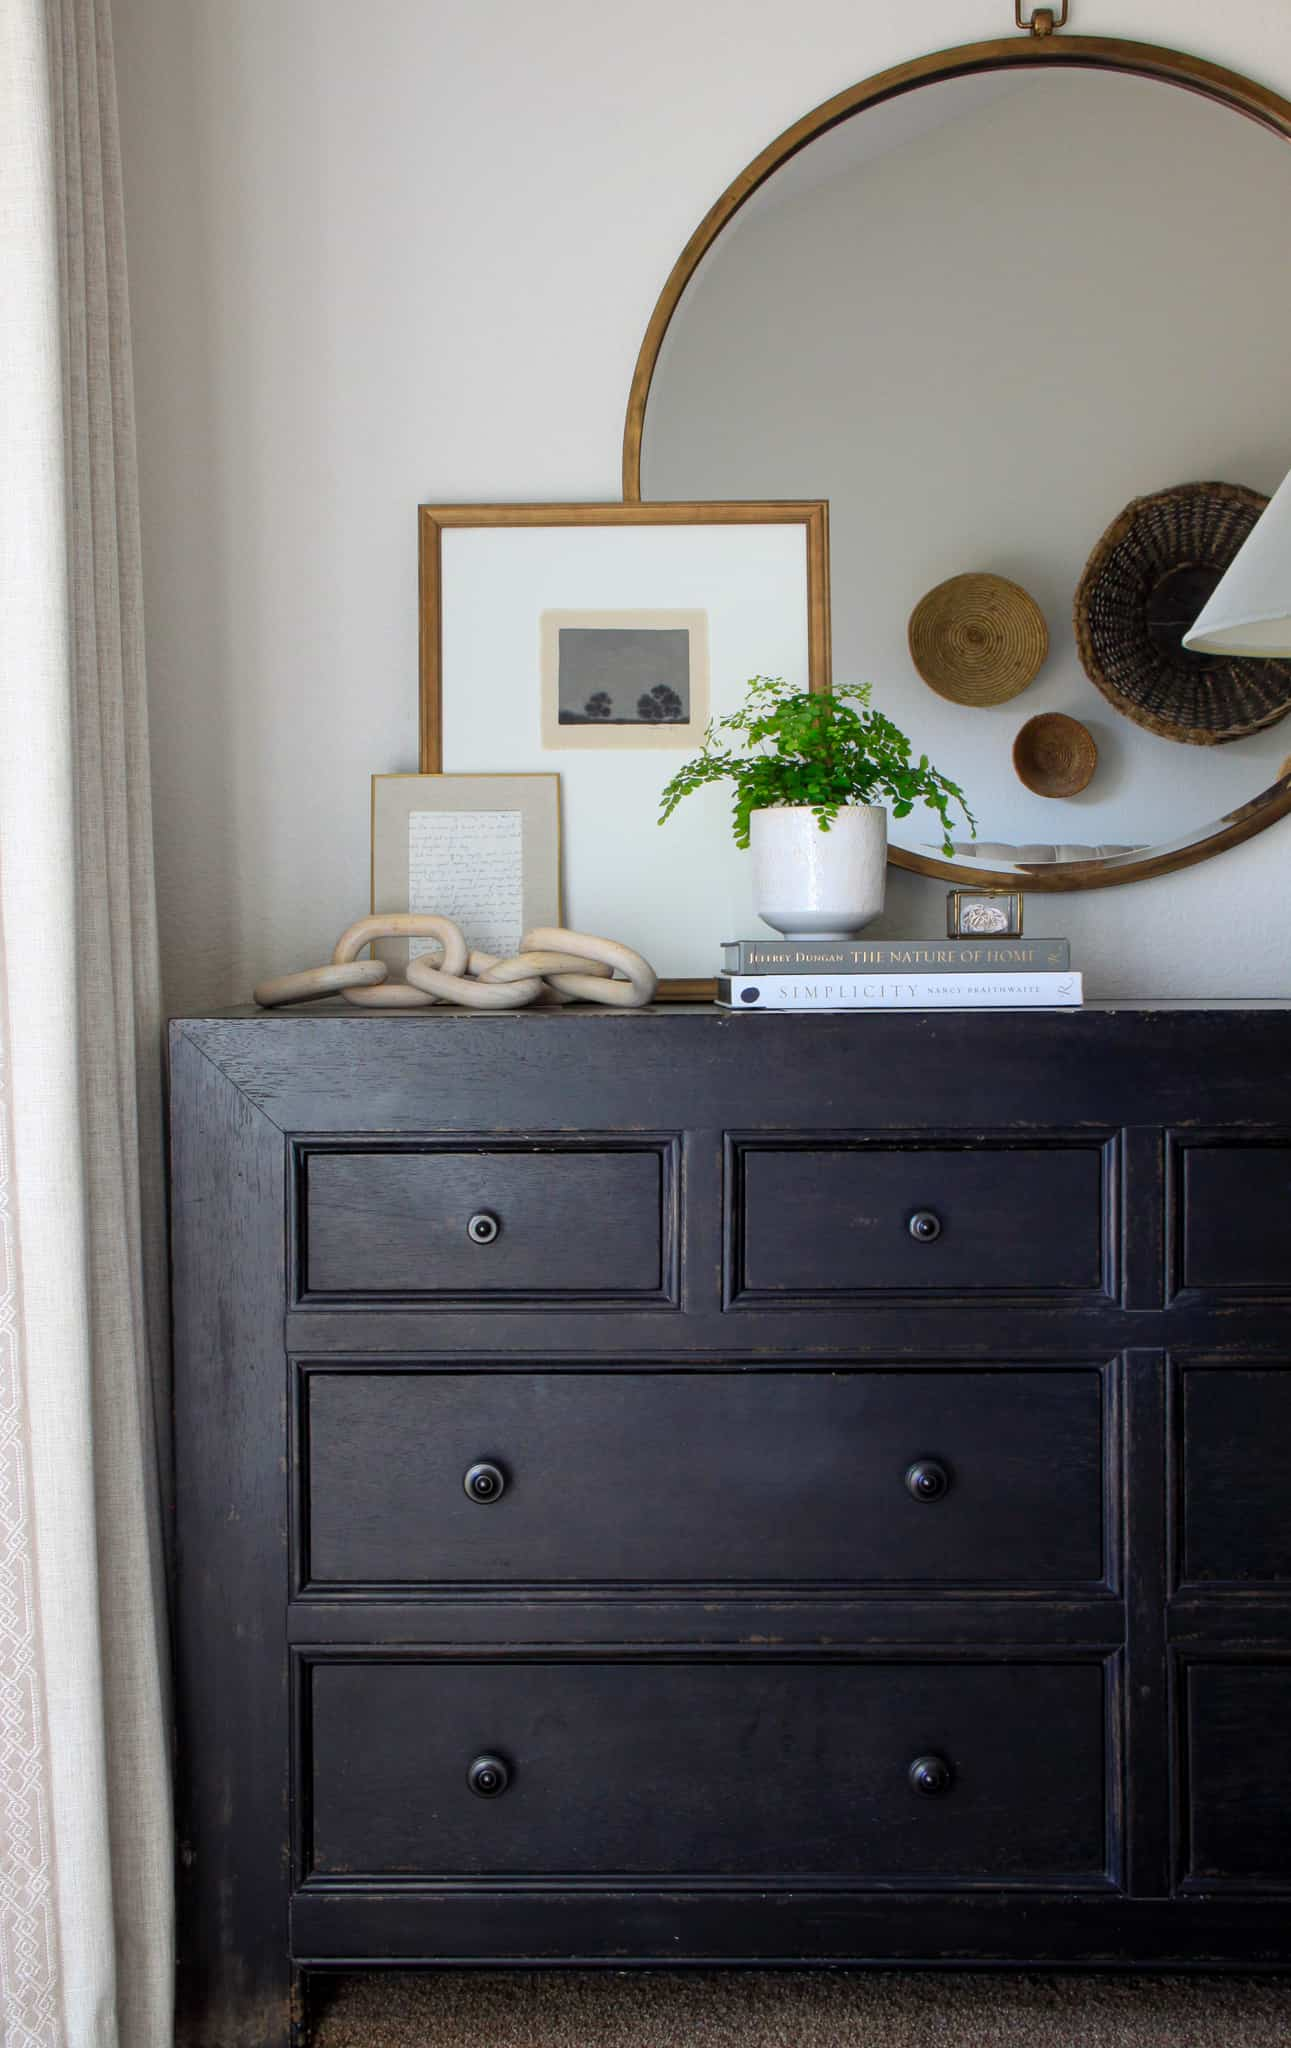 black dresser with round mirror and art layered in front